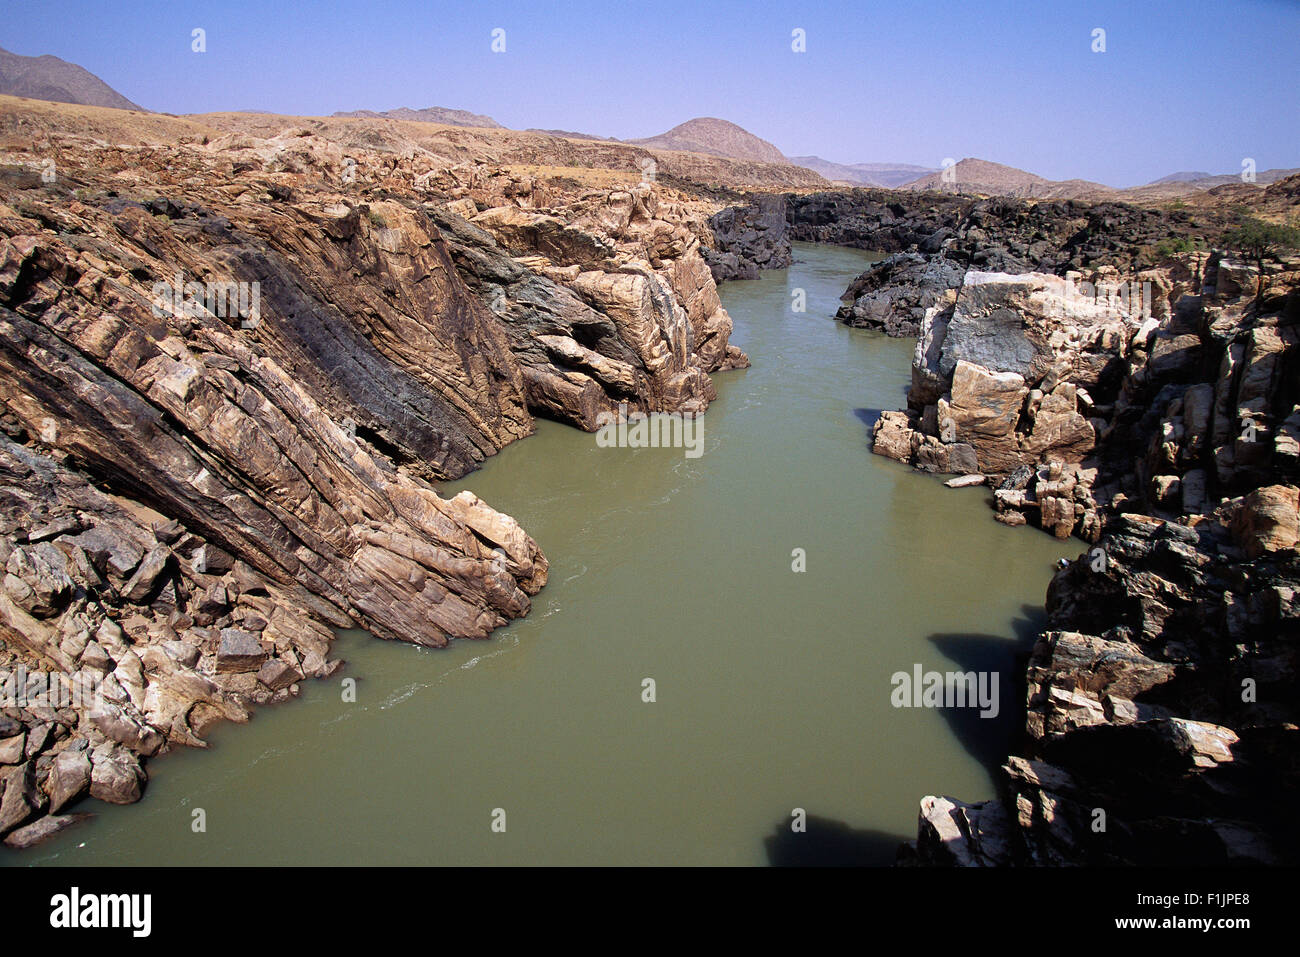 Overview Kunene River, Namibia, Africa - Stock Image